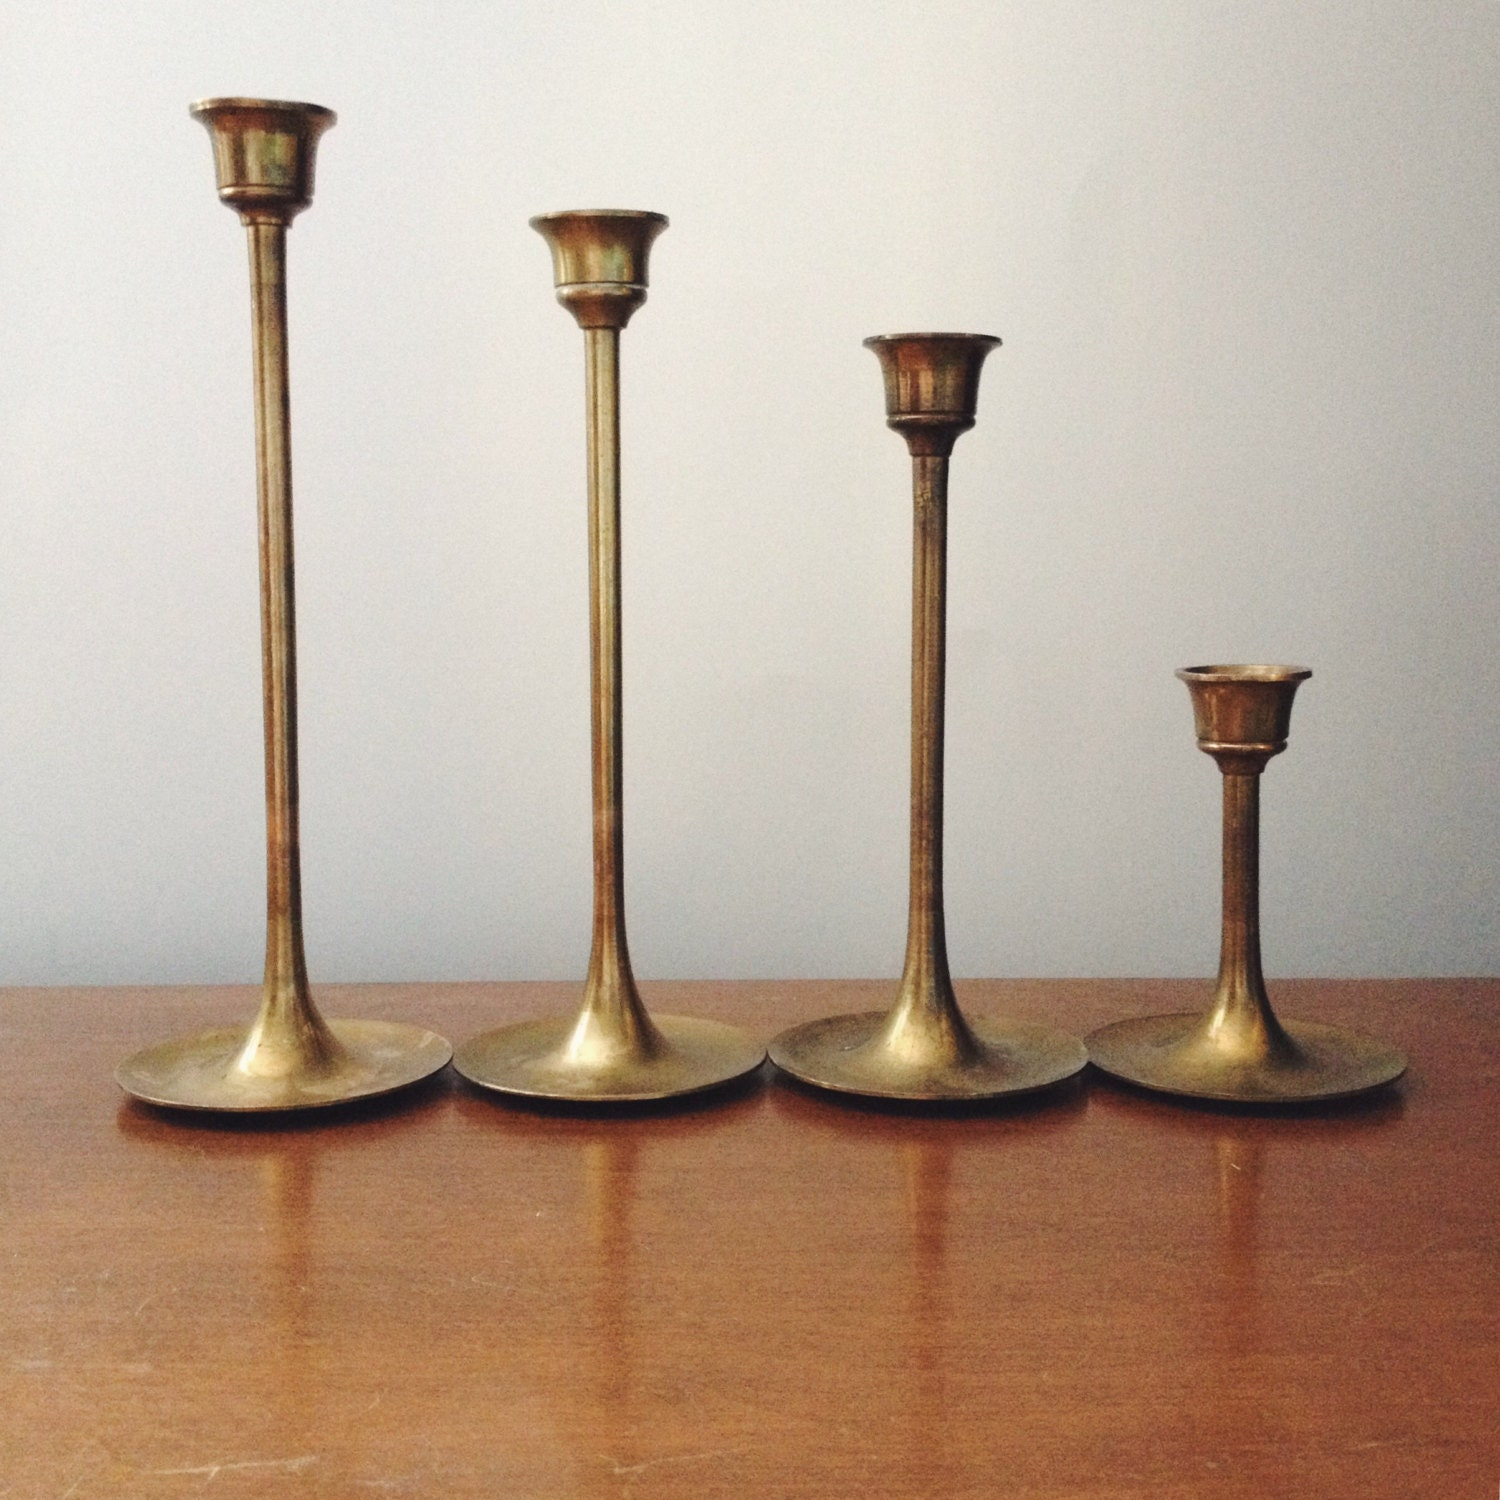 Vintage brass candle holders set of 4 home decor